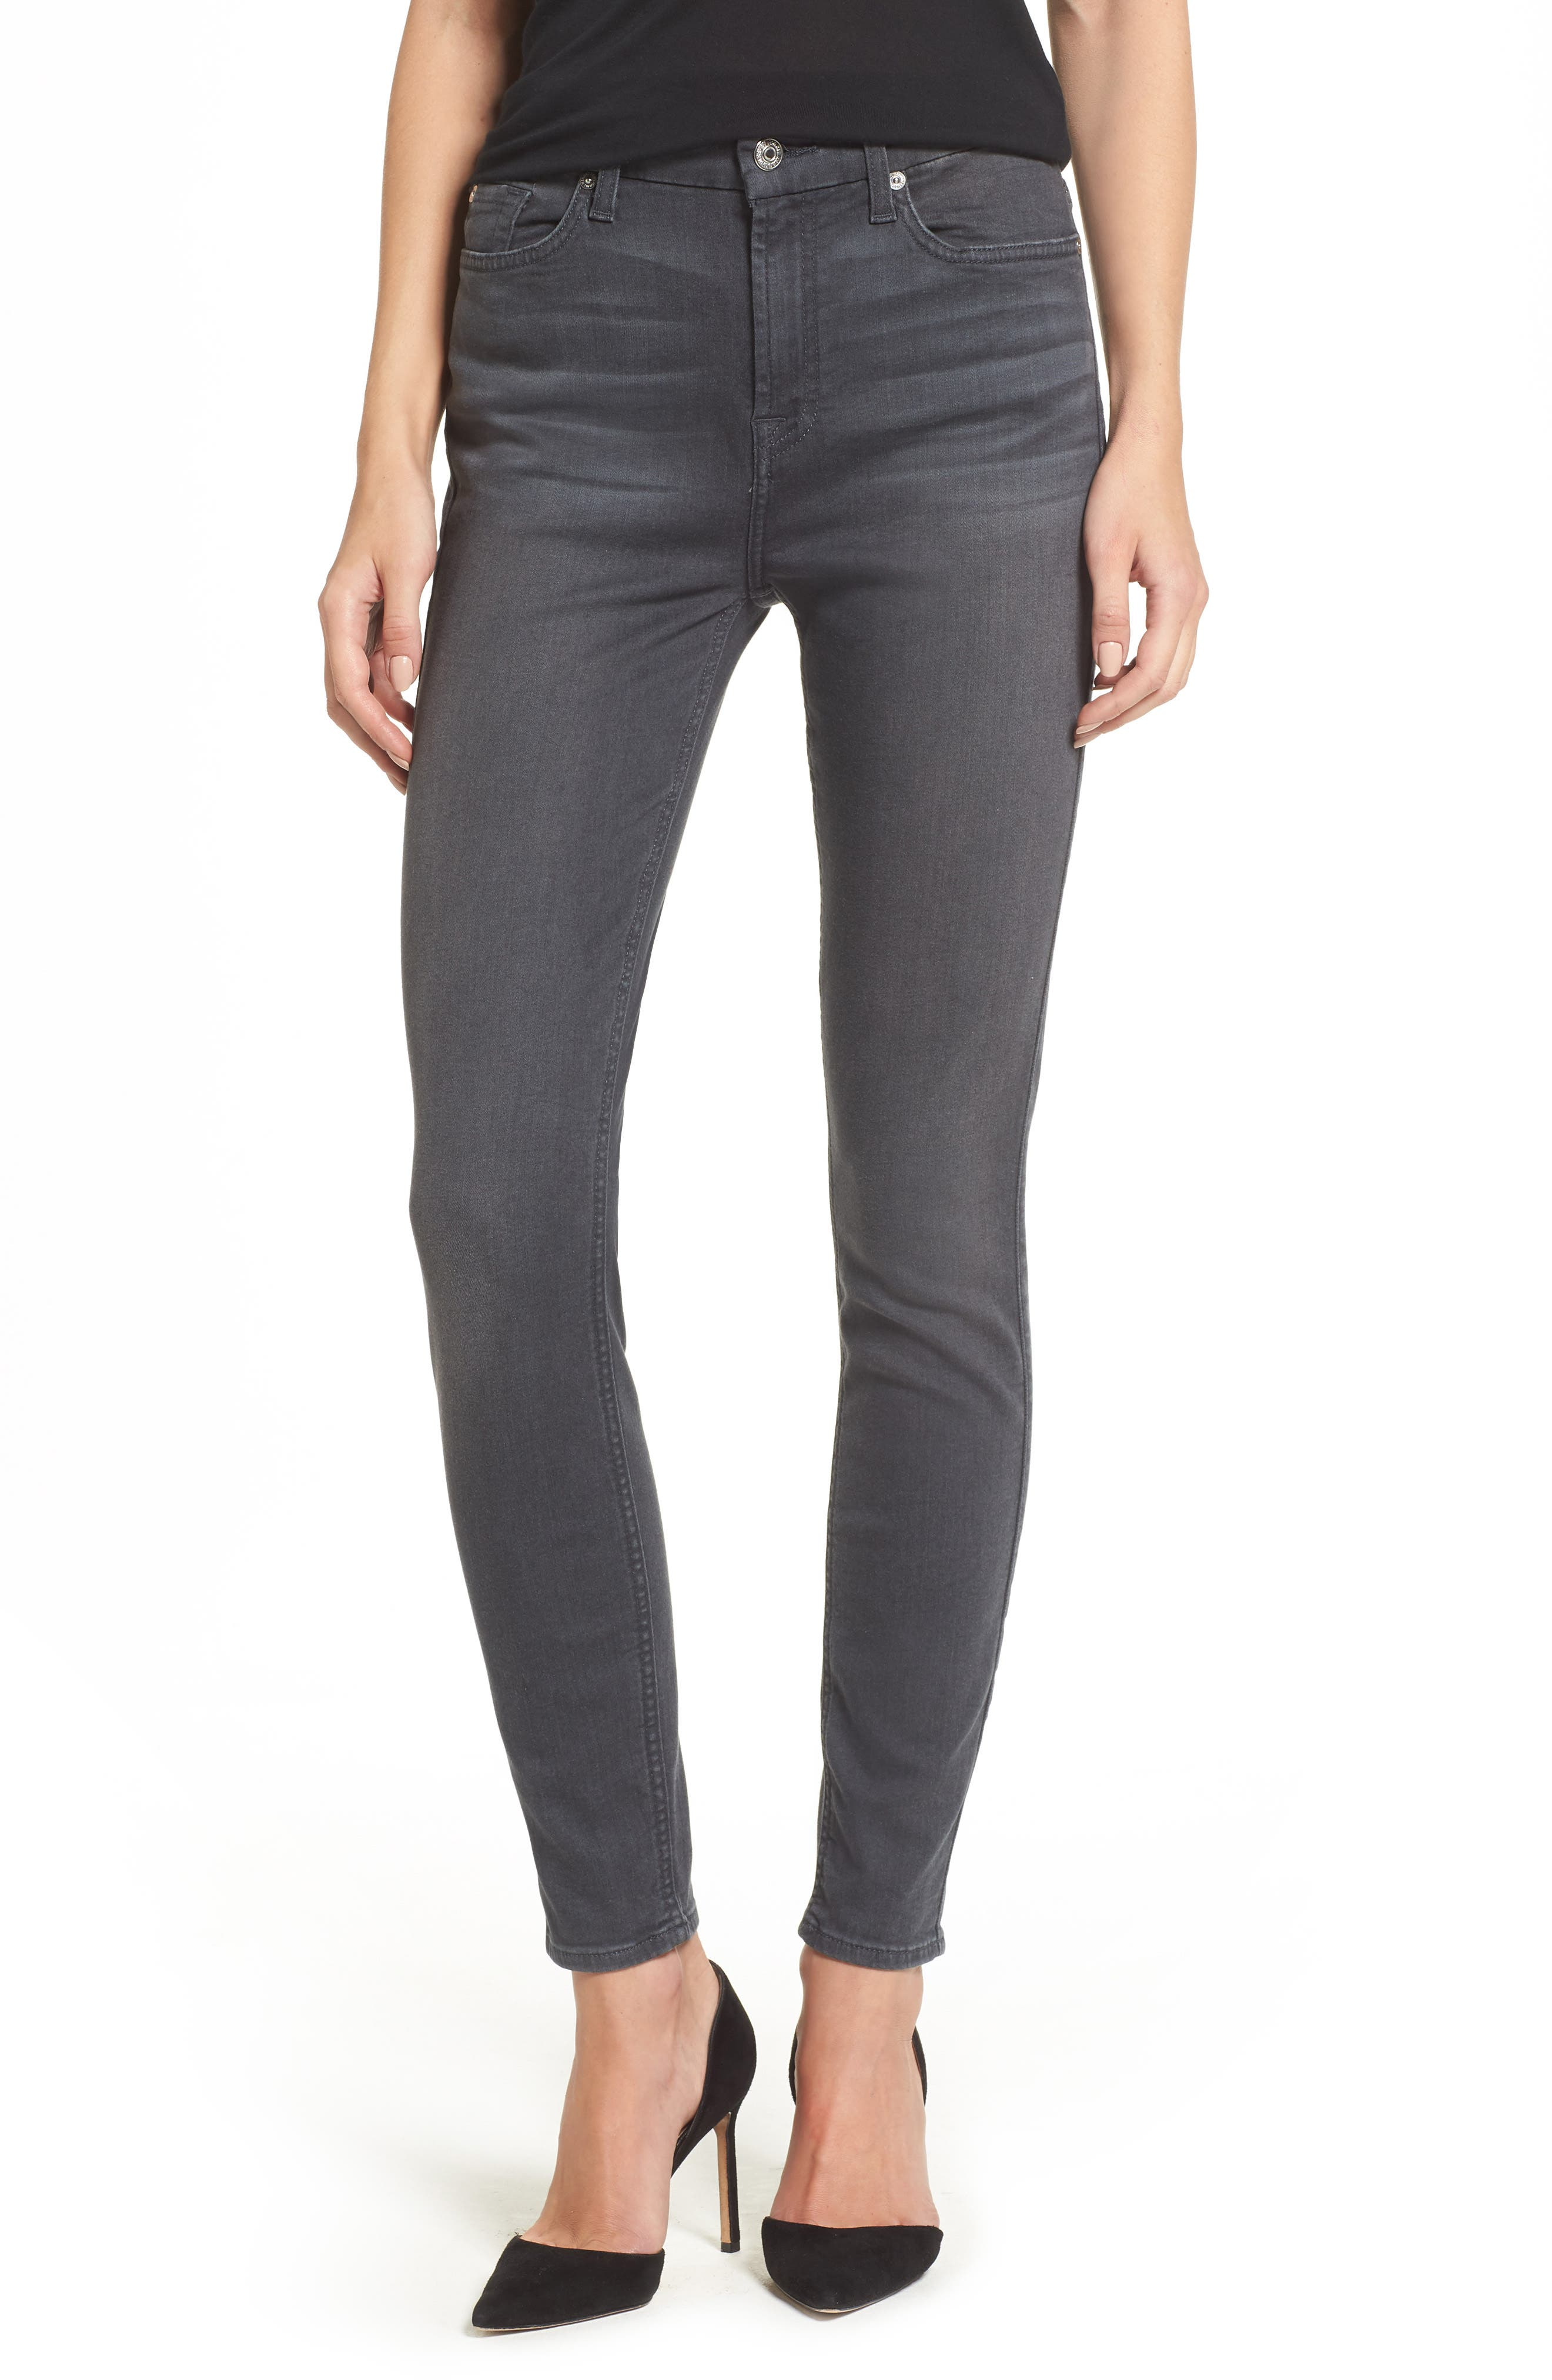 Alternate Image 1 Selected - 7 For All Mankind® b(air) High Waist Skinny Jeans (Smoke)